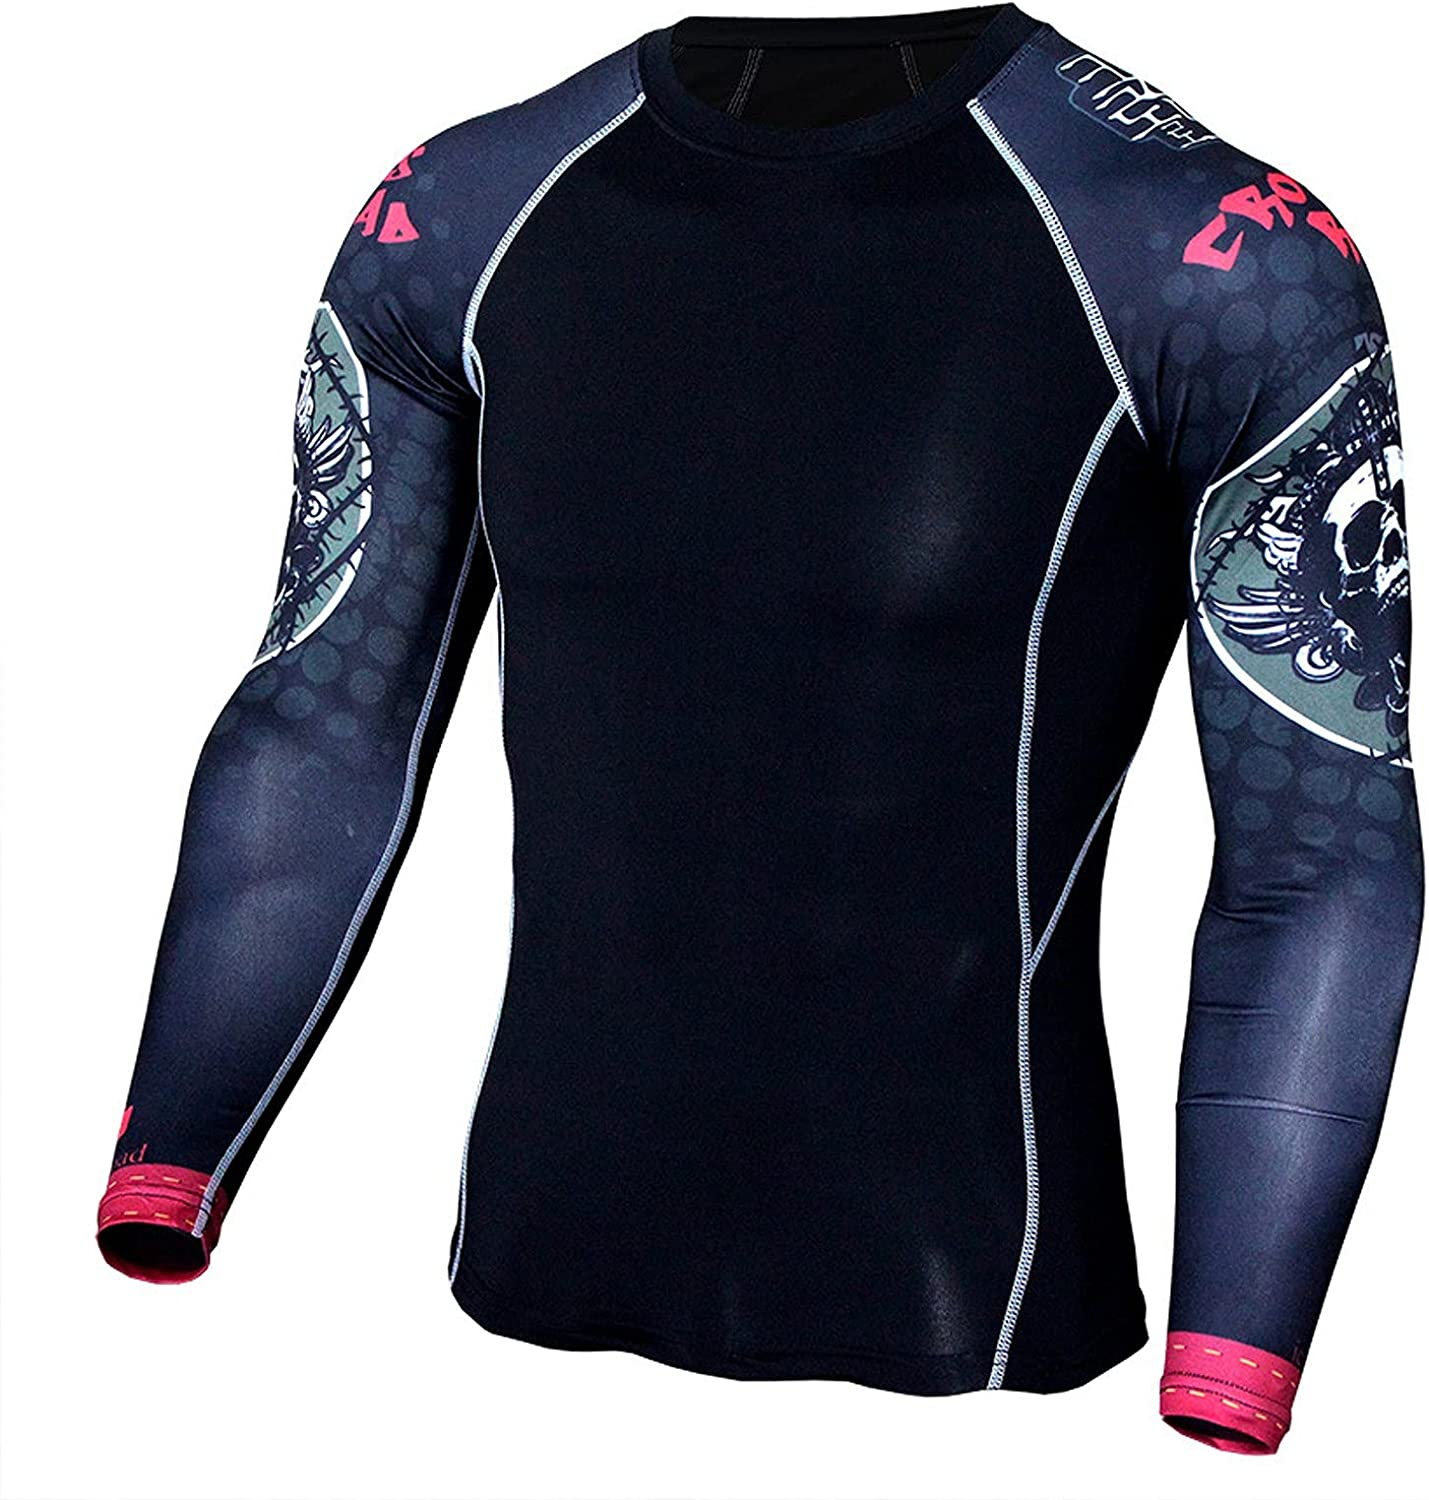 JSPOYOU Men's Long Sleeve Compression Shirts Top Sports Workout Running Athletic Gym Base Layer Dry Cool Top